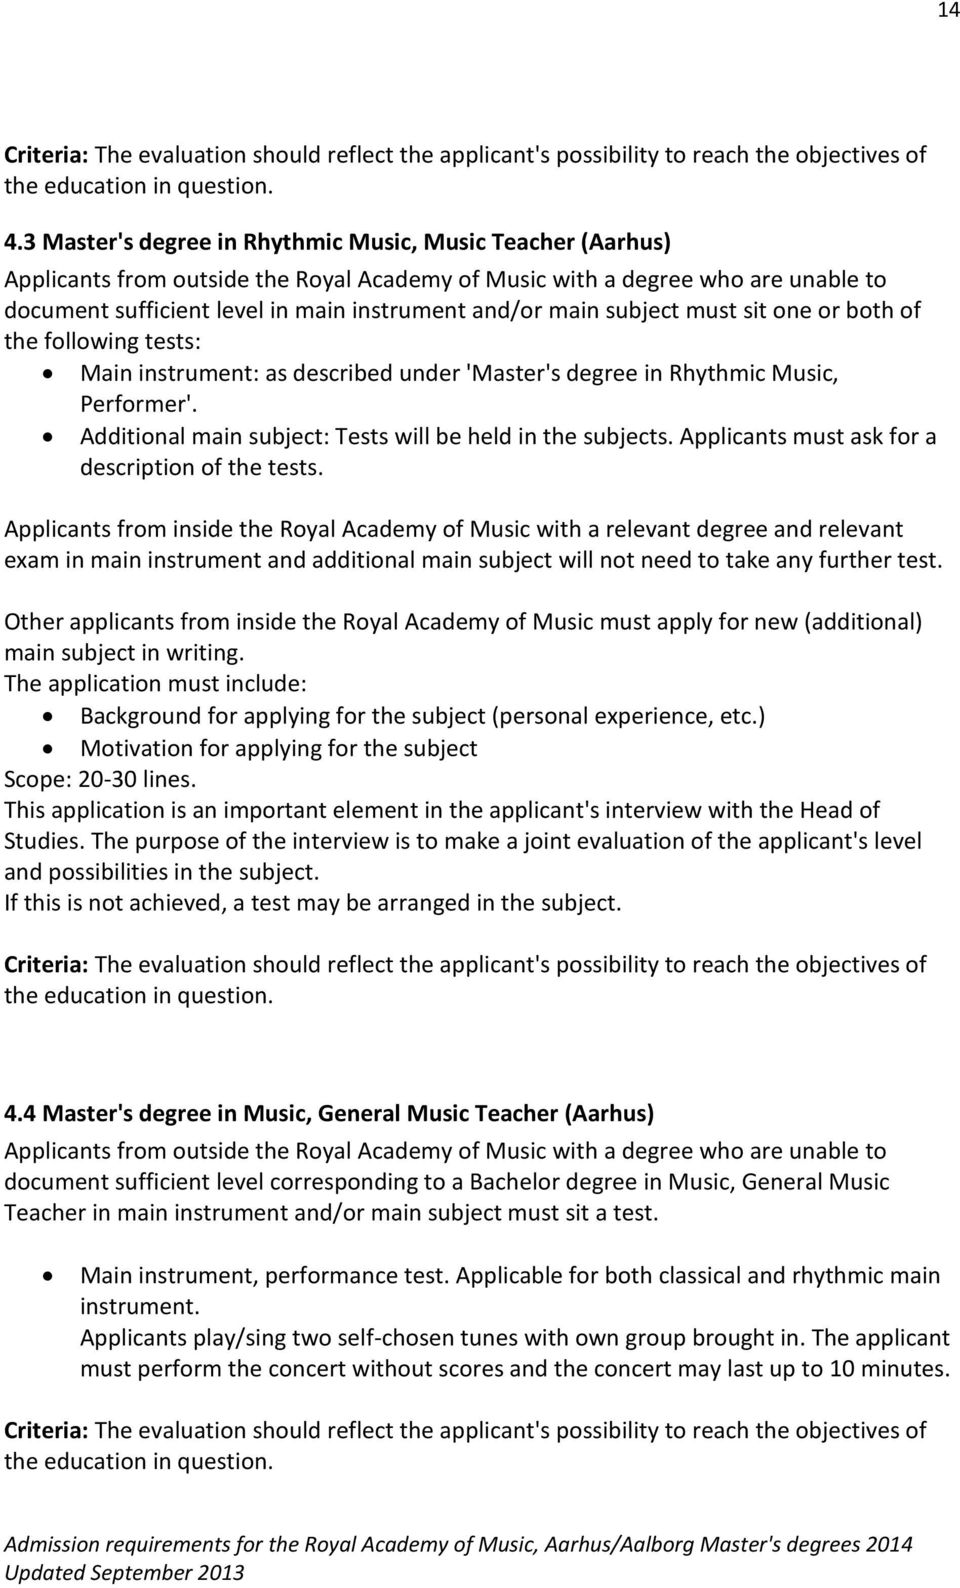 subject must sit one or both of the following tests: Main instrument: as described under 'Master's degree in Rhythmic Music, Performer'. Additional main subject: Tests will be held in the subjects.